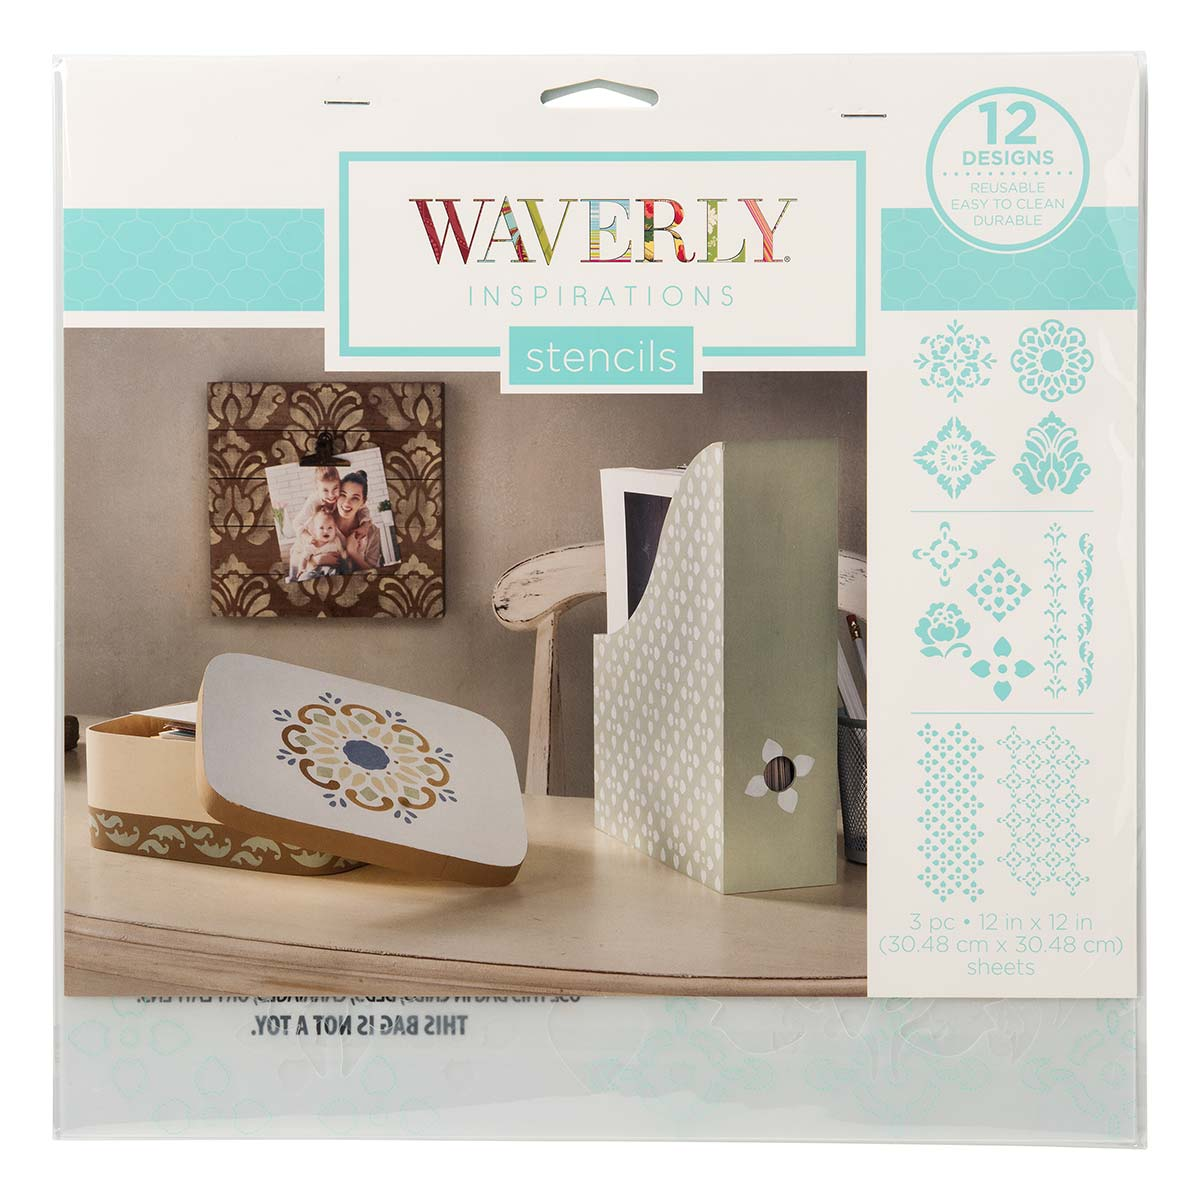 Waverly ® Inspirations Laser Stencils - Décor - Medallions, 12